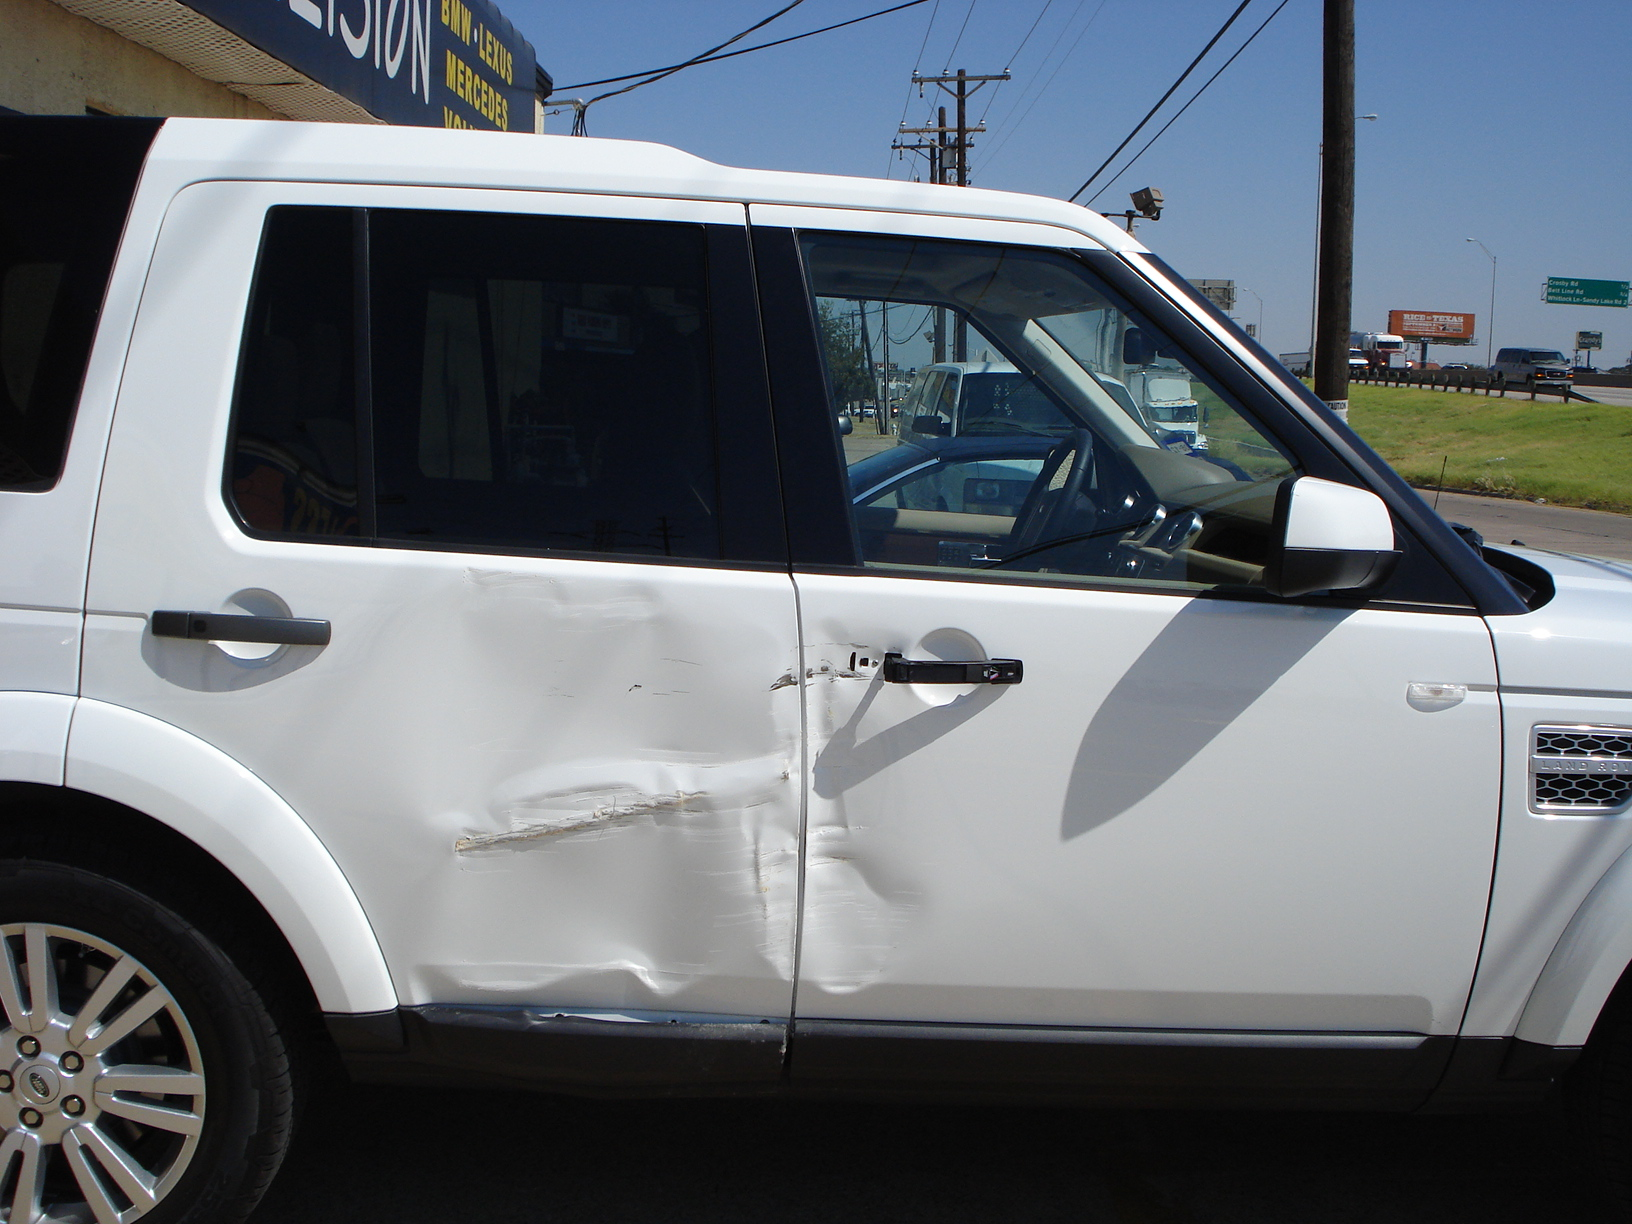 Land Rover Before Body Repair Damage Collision Dallas North Texas